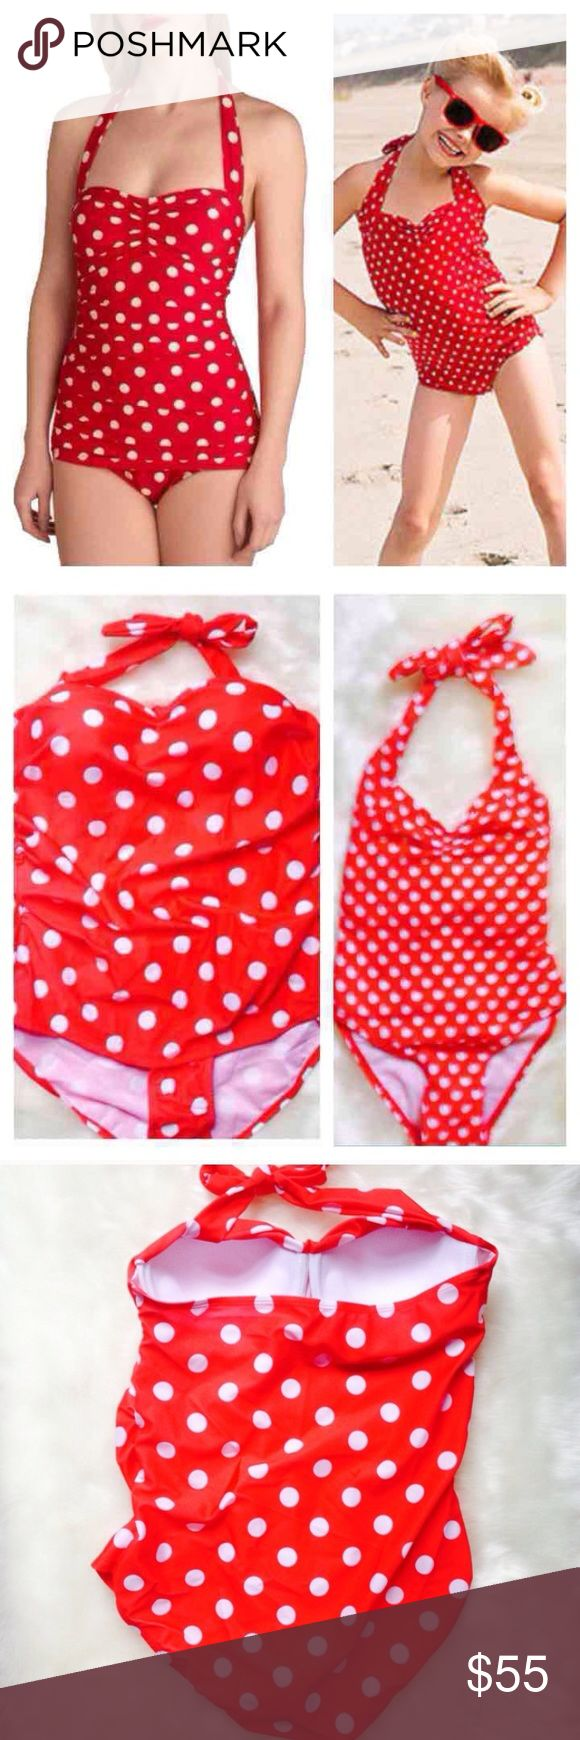 "Mommy & Me Matching Polka Dot Swimsuits Mom Size M Adorable matching swimsuits to make summer extra cute for you and your little one. ***Includes BOTH suits. Mom suit details: *Made of 80% Acrylic, 20% Spandex. *Has built in padded bust cups, underwire. *Halter ties around neck. *Measurements are as follows: LARGE Bust 32-34"" Waist 24-25"" Hips 34-36"" Length from top of bust to crotch 25"". Tag says L but fits more like M. Toddler suit details: *Measurements:Chest 20"" Hips 20"" (2 inches of…"